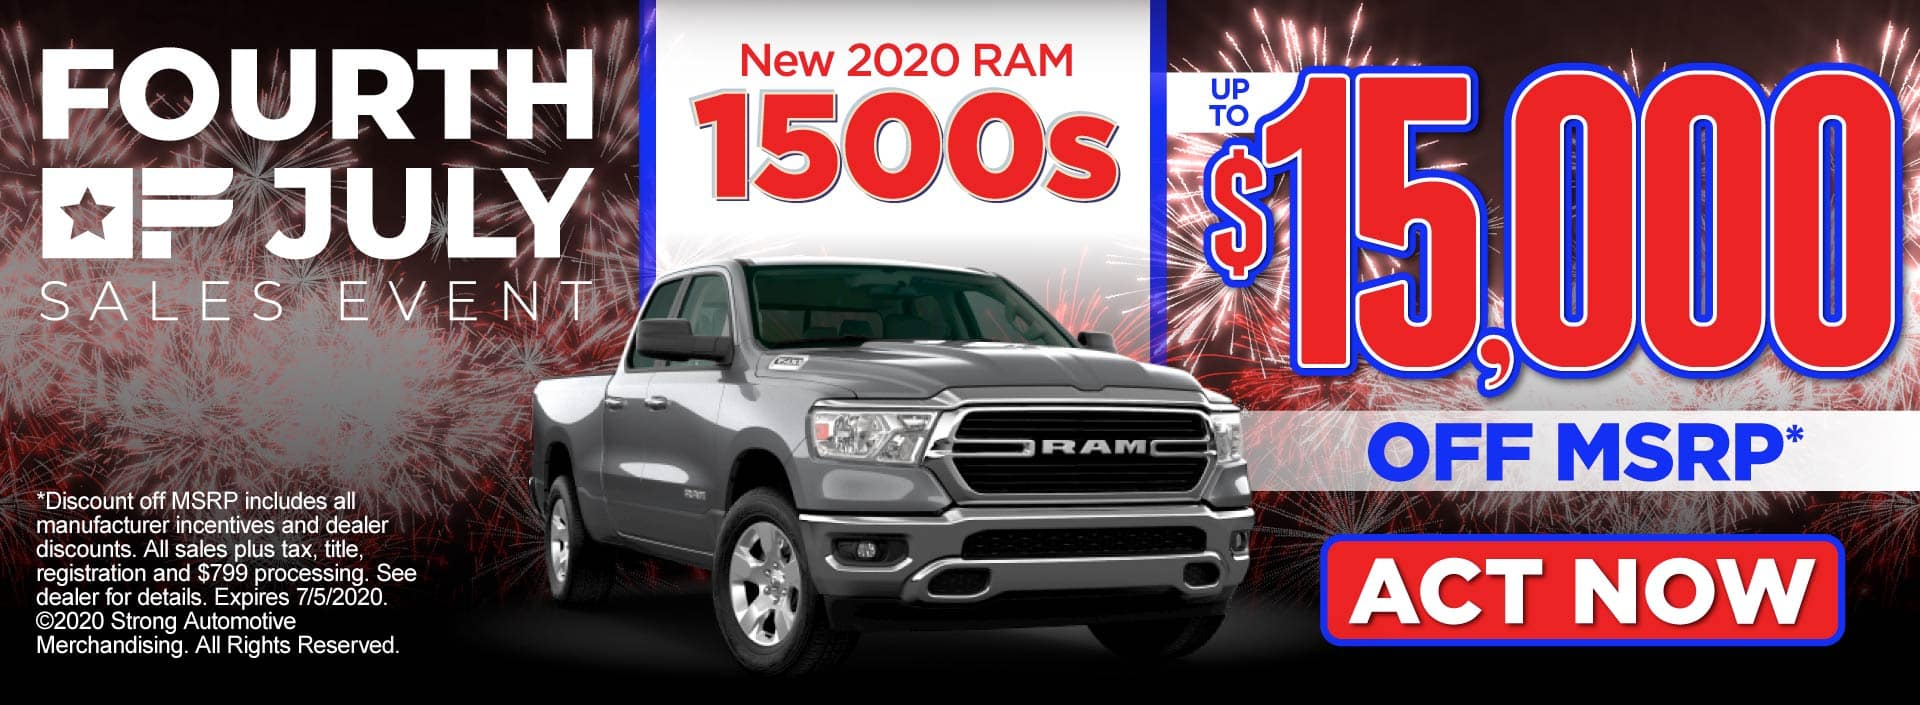 New 2020 RAM 1500s up to $15,000 off MSRP - Act Now